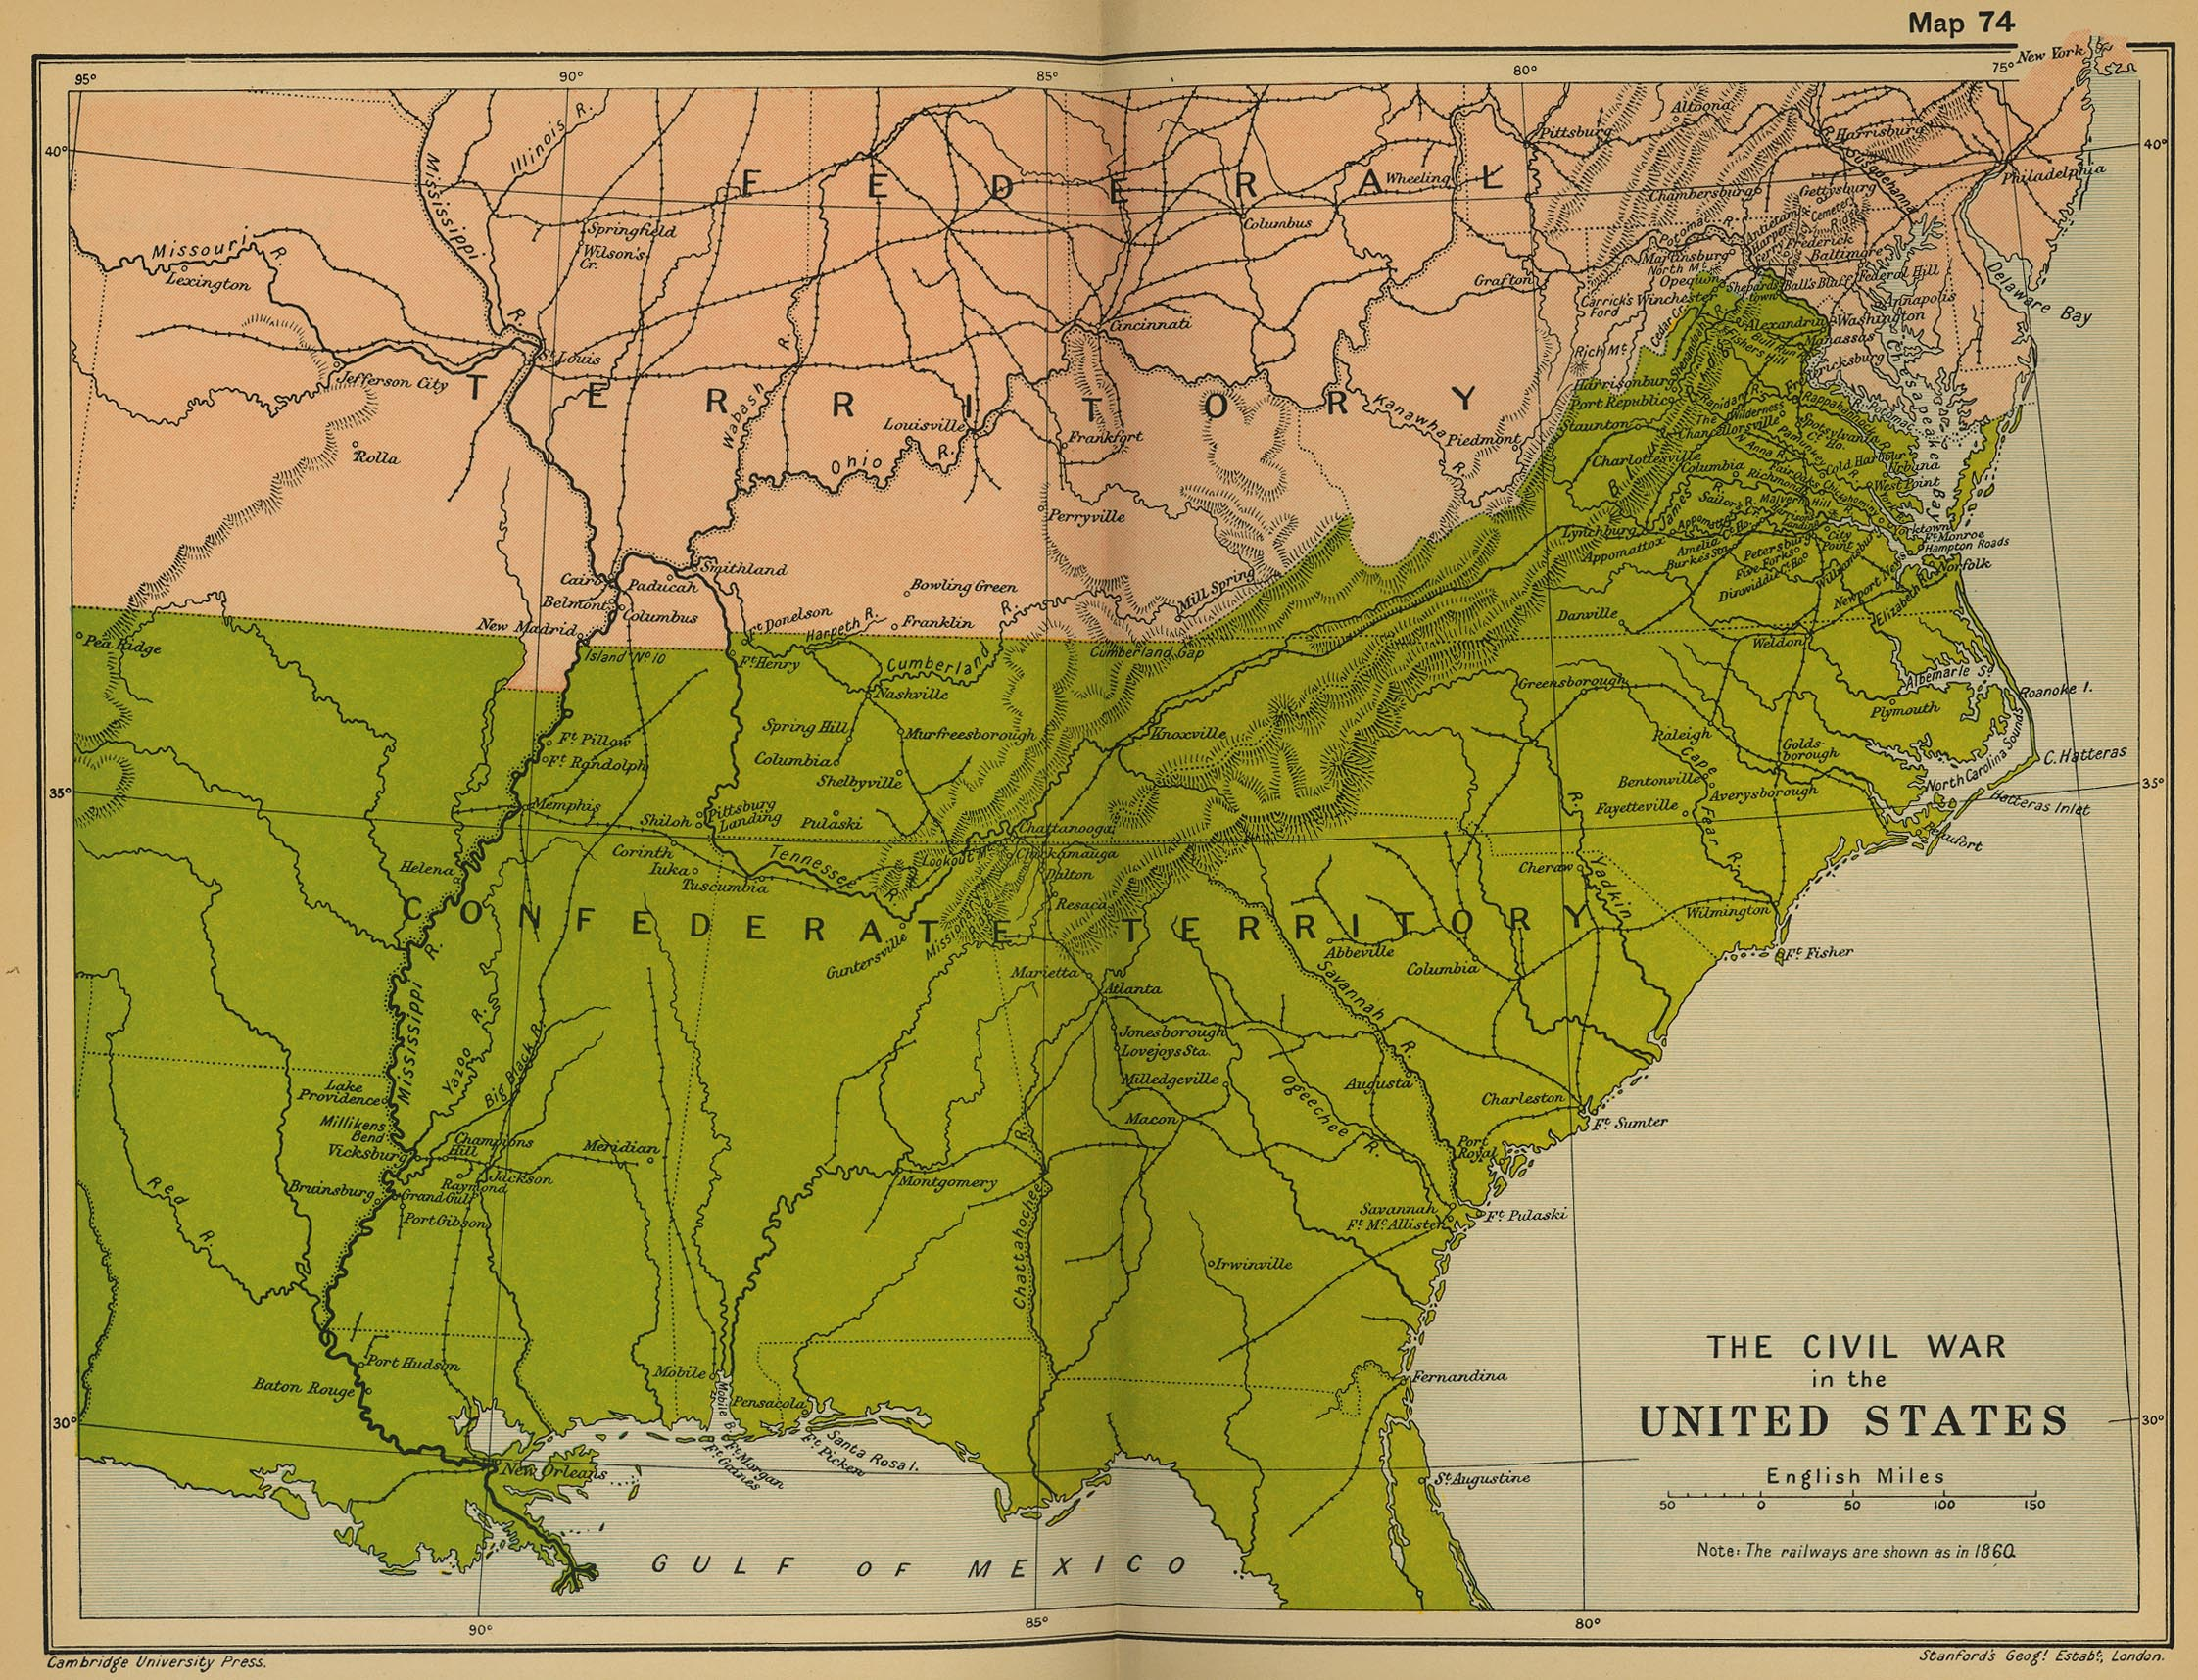 Map Of The Civil War In The United States 1861 1865